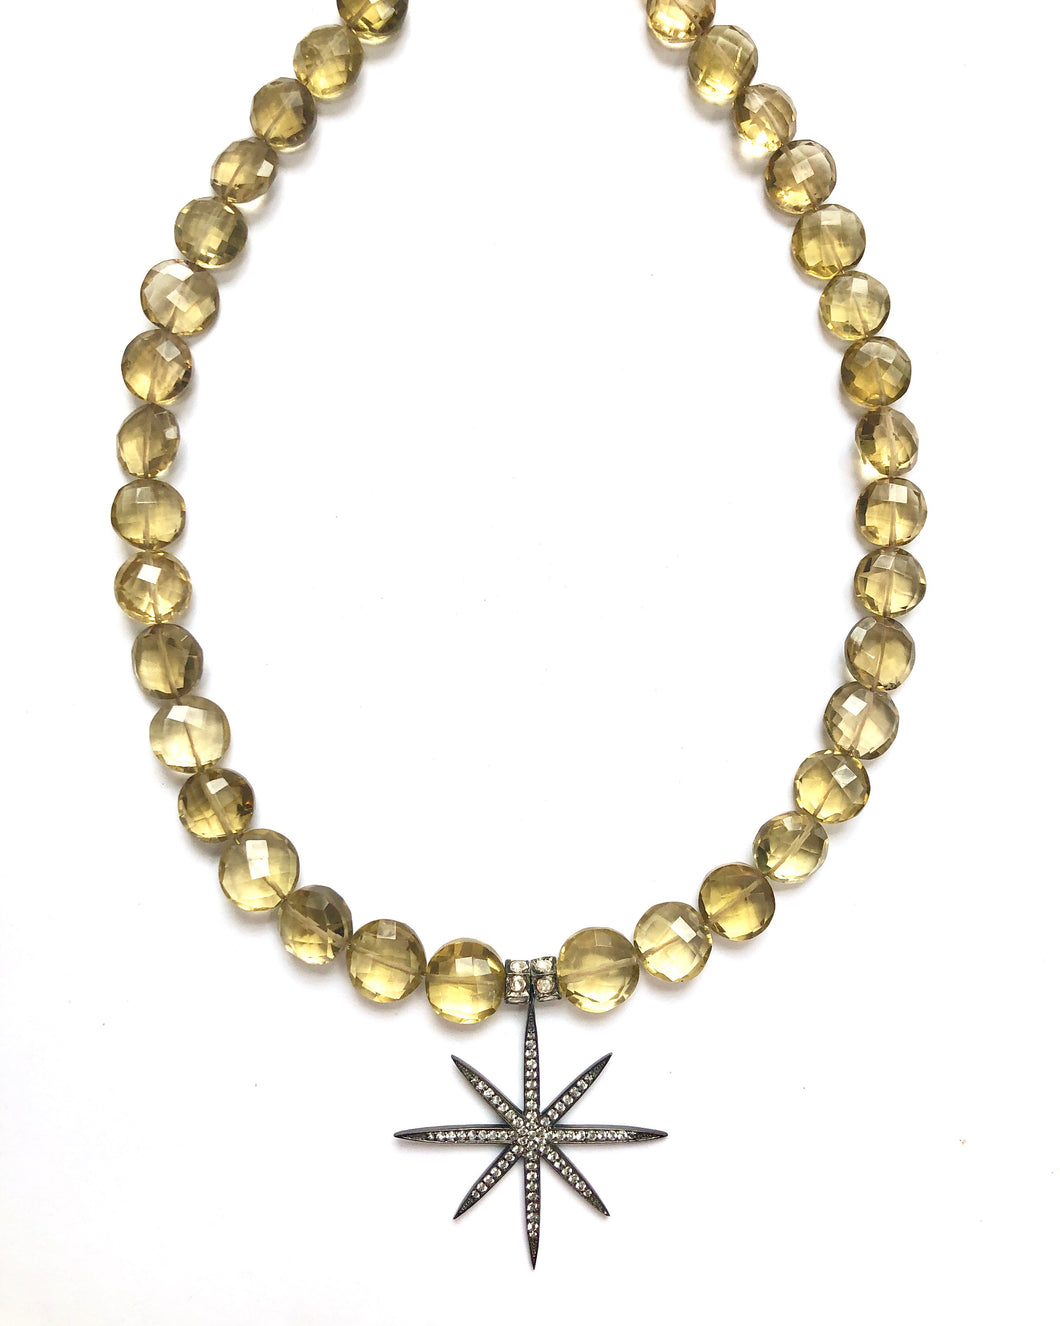 Champagne Quartz & Star White Topaz Necklace